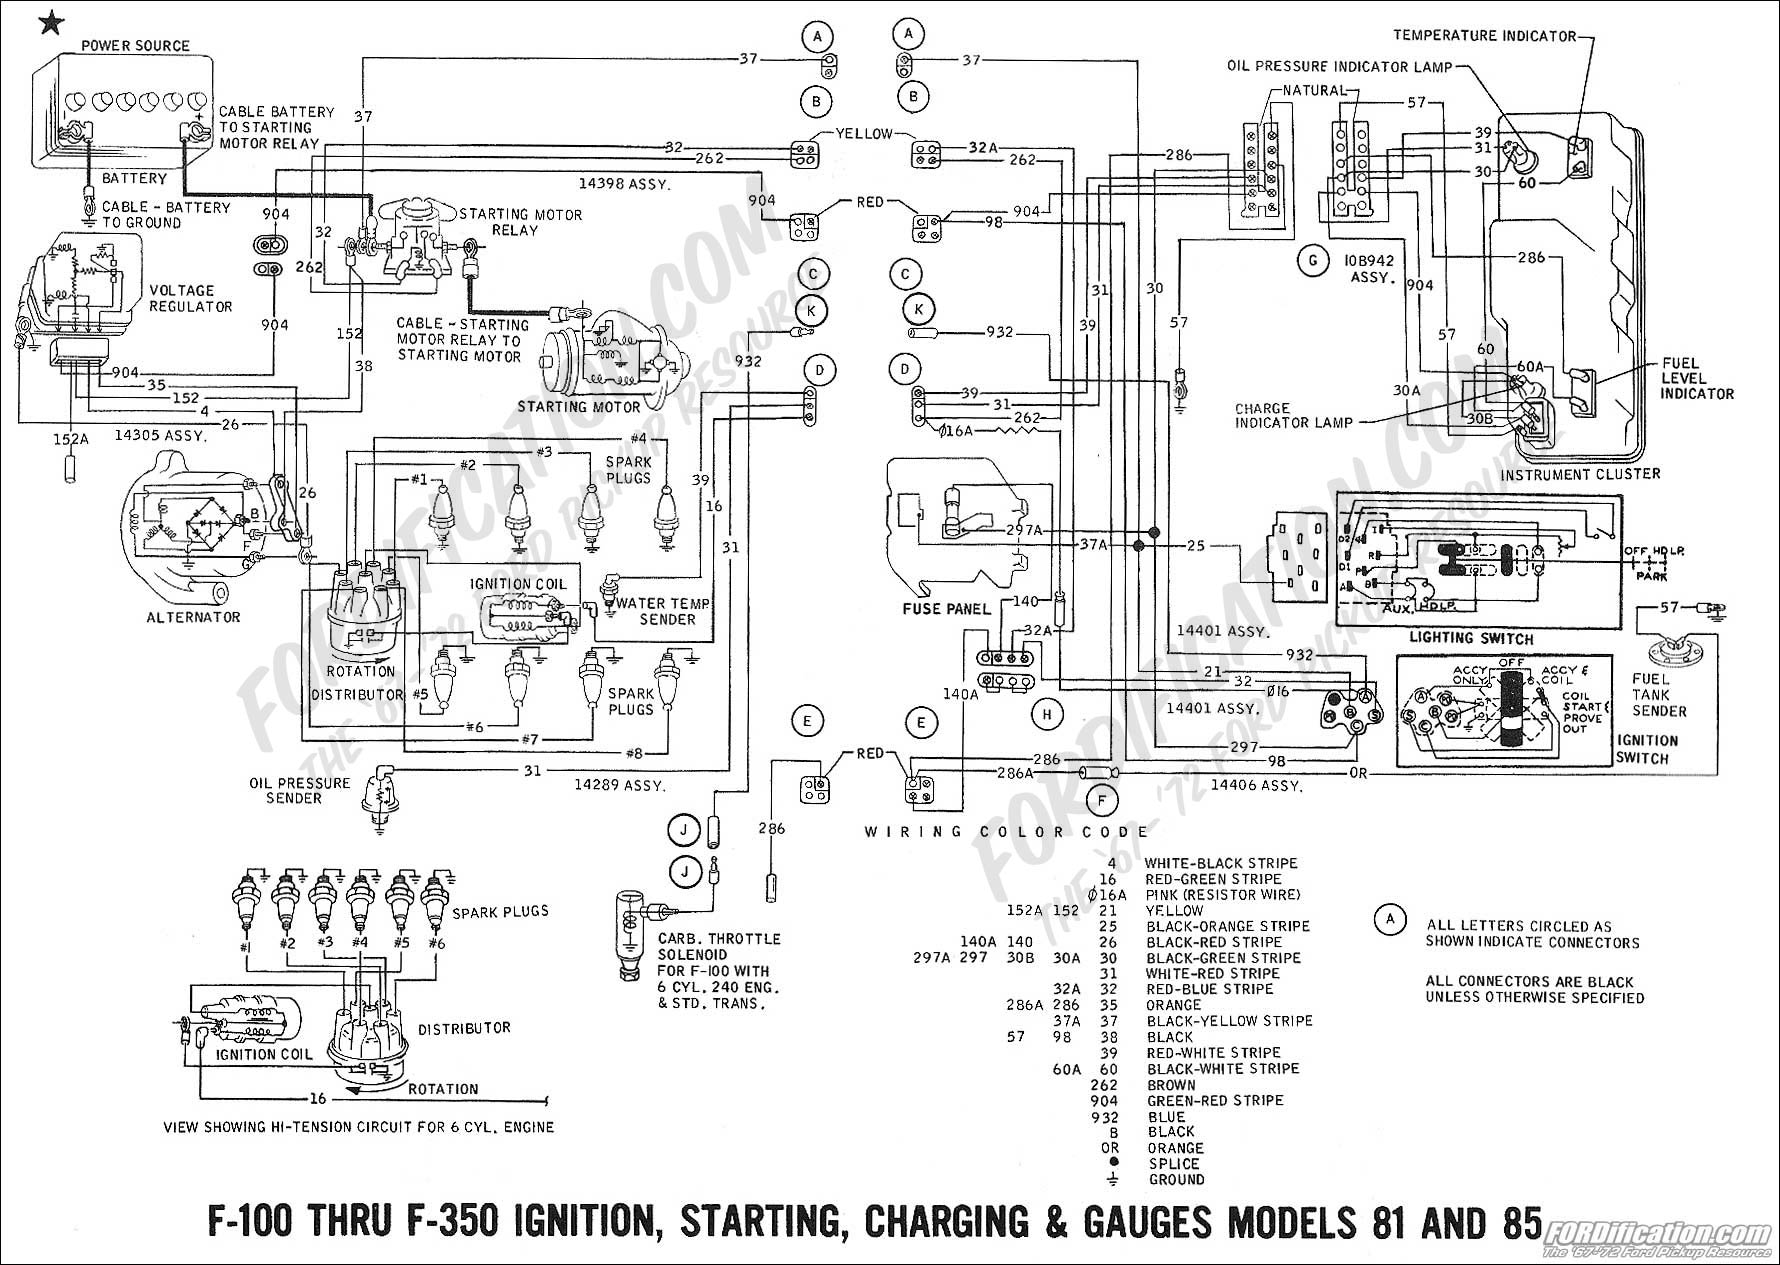 1969 Ford Ignition Switch Diagram - All Wiring Diagram